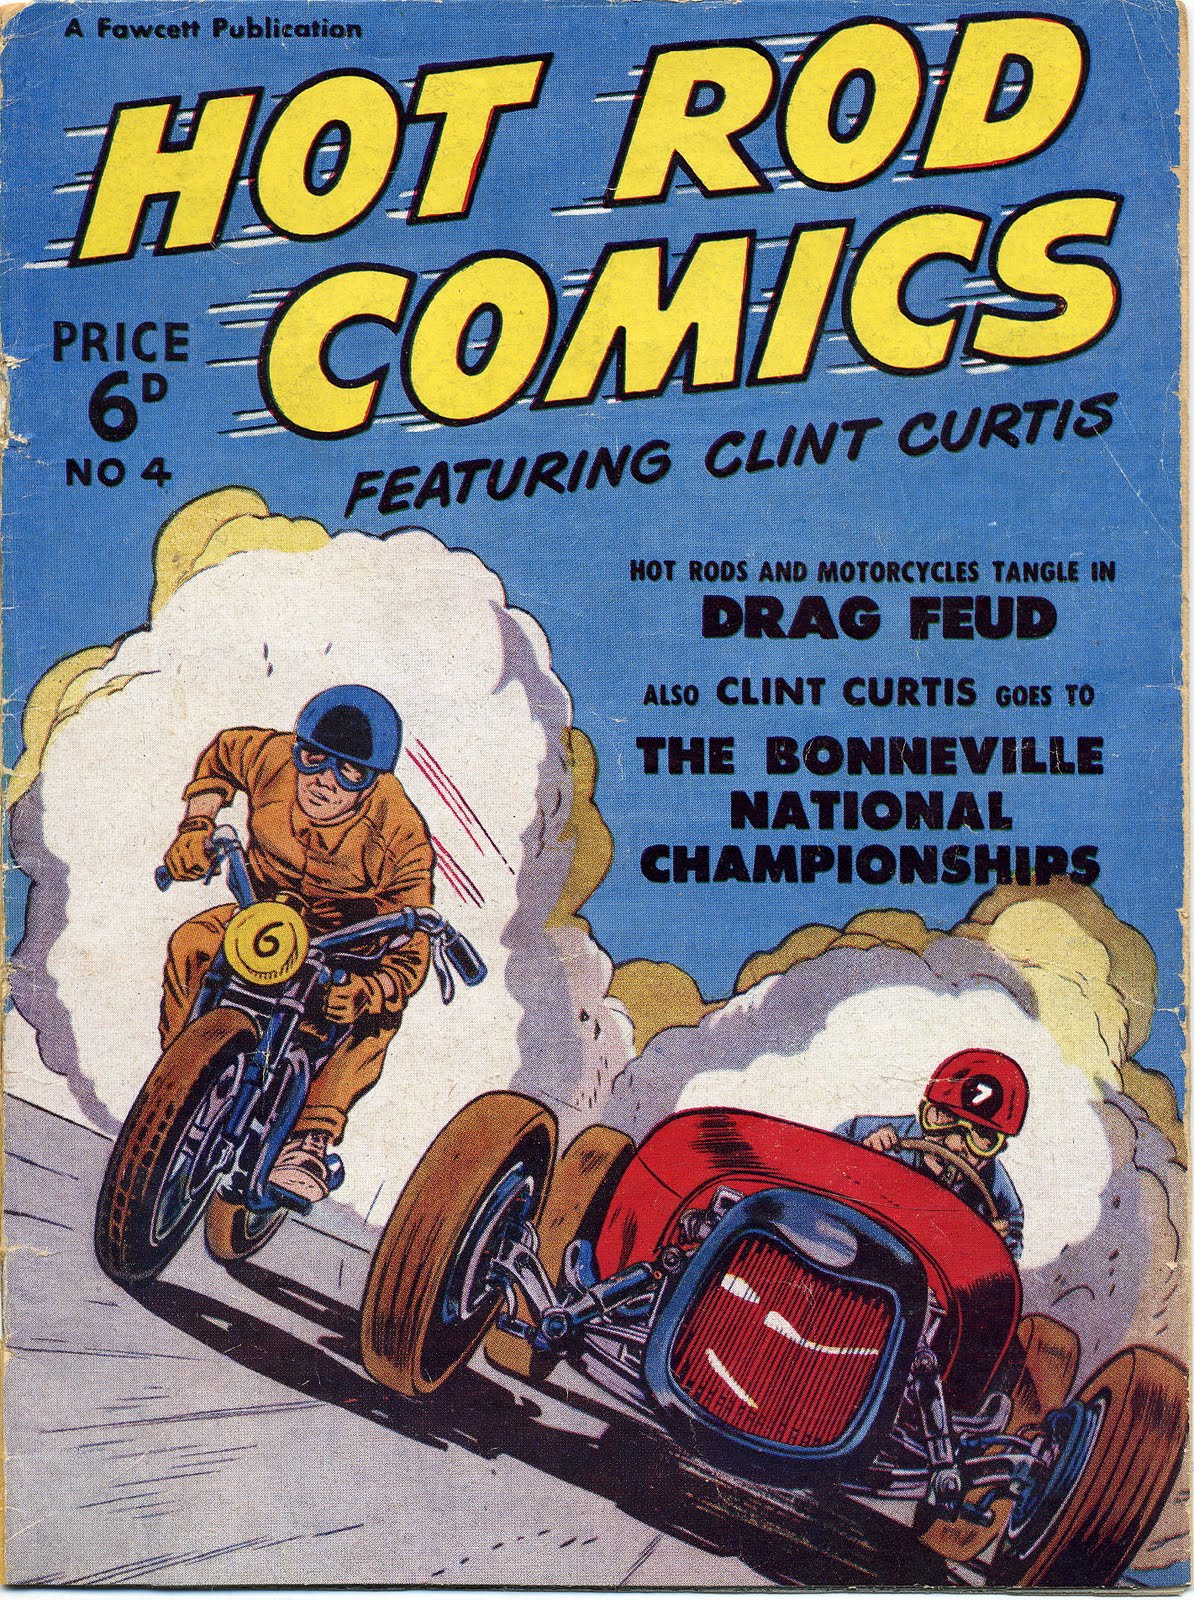 Hot Rod comics featuring Clint